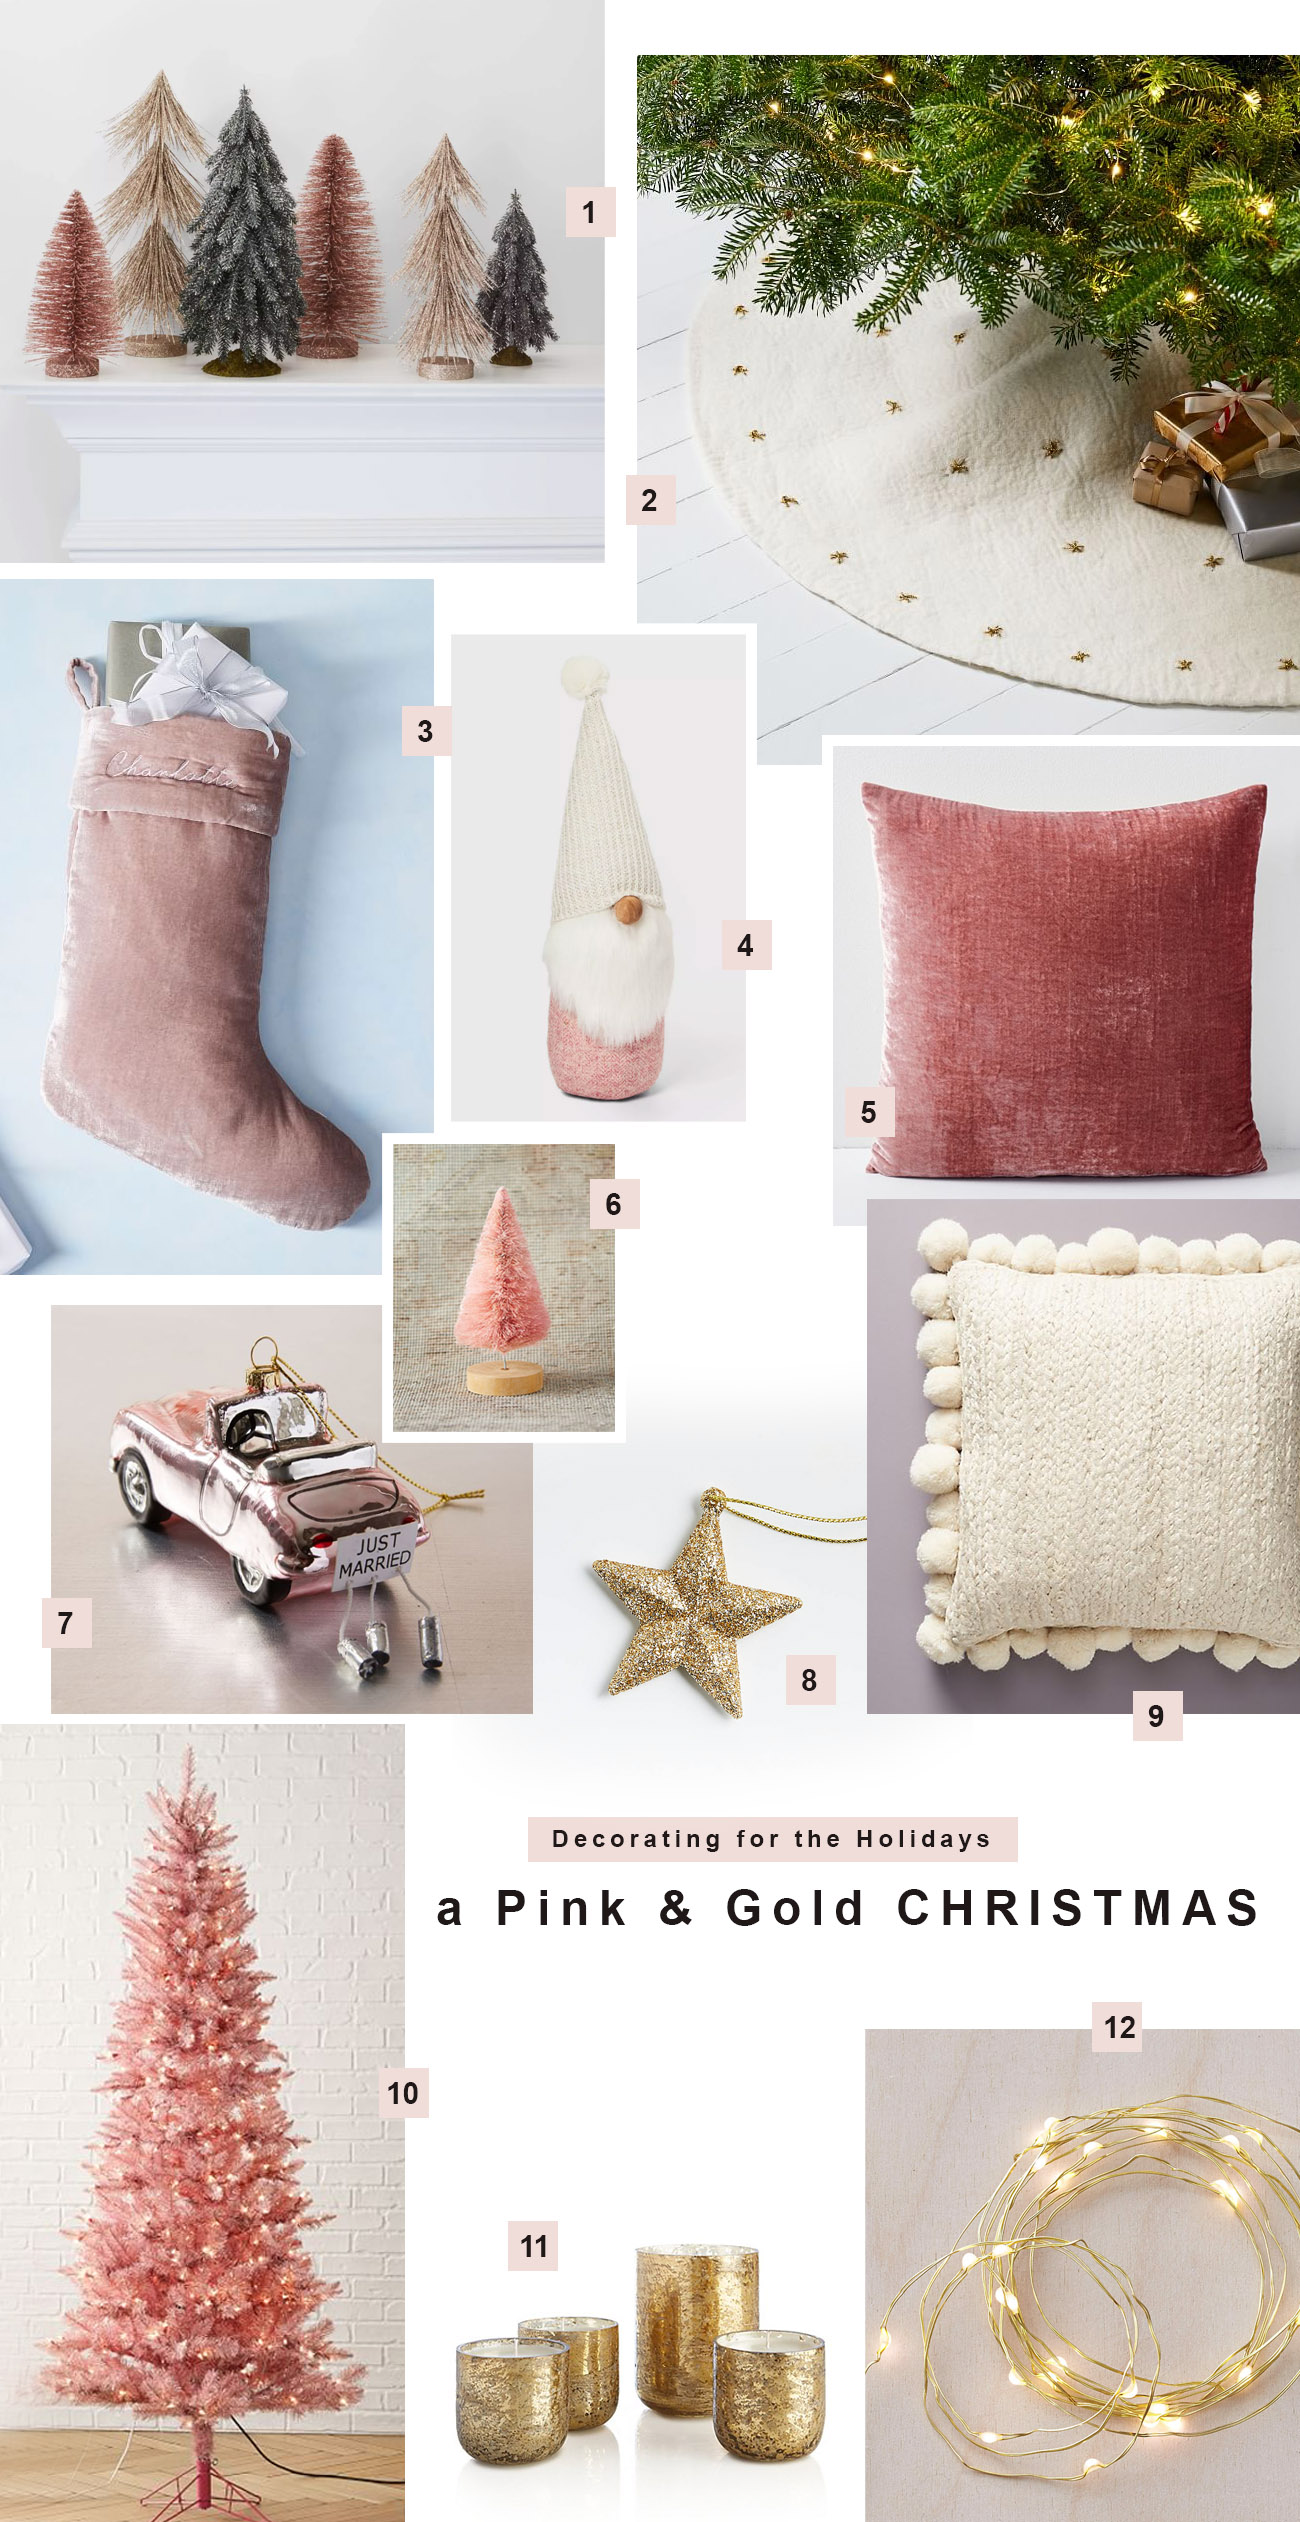 Decorating for Christmas in pink and gold